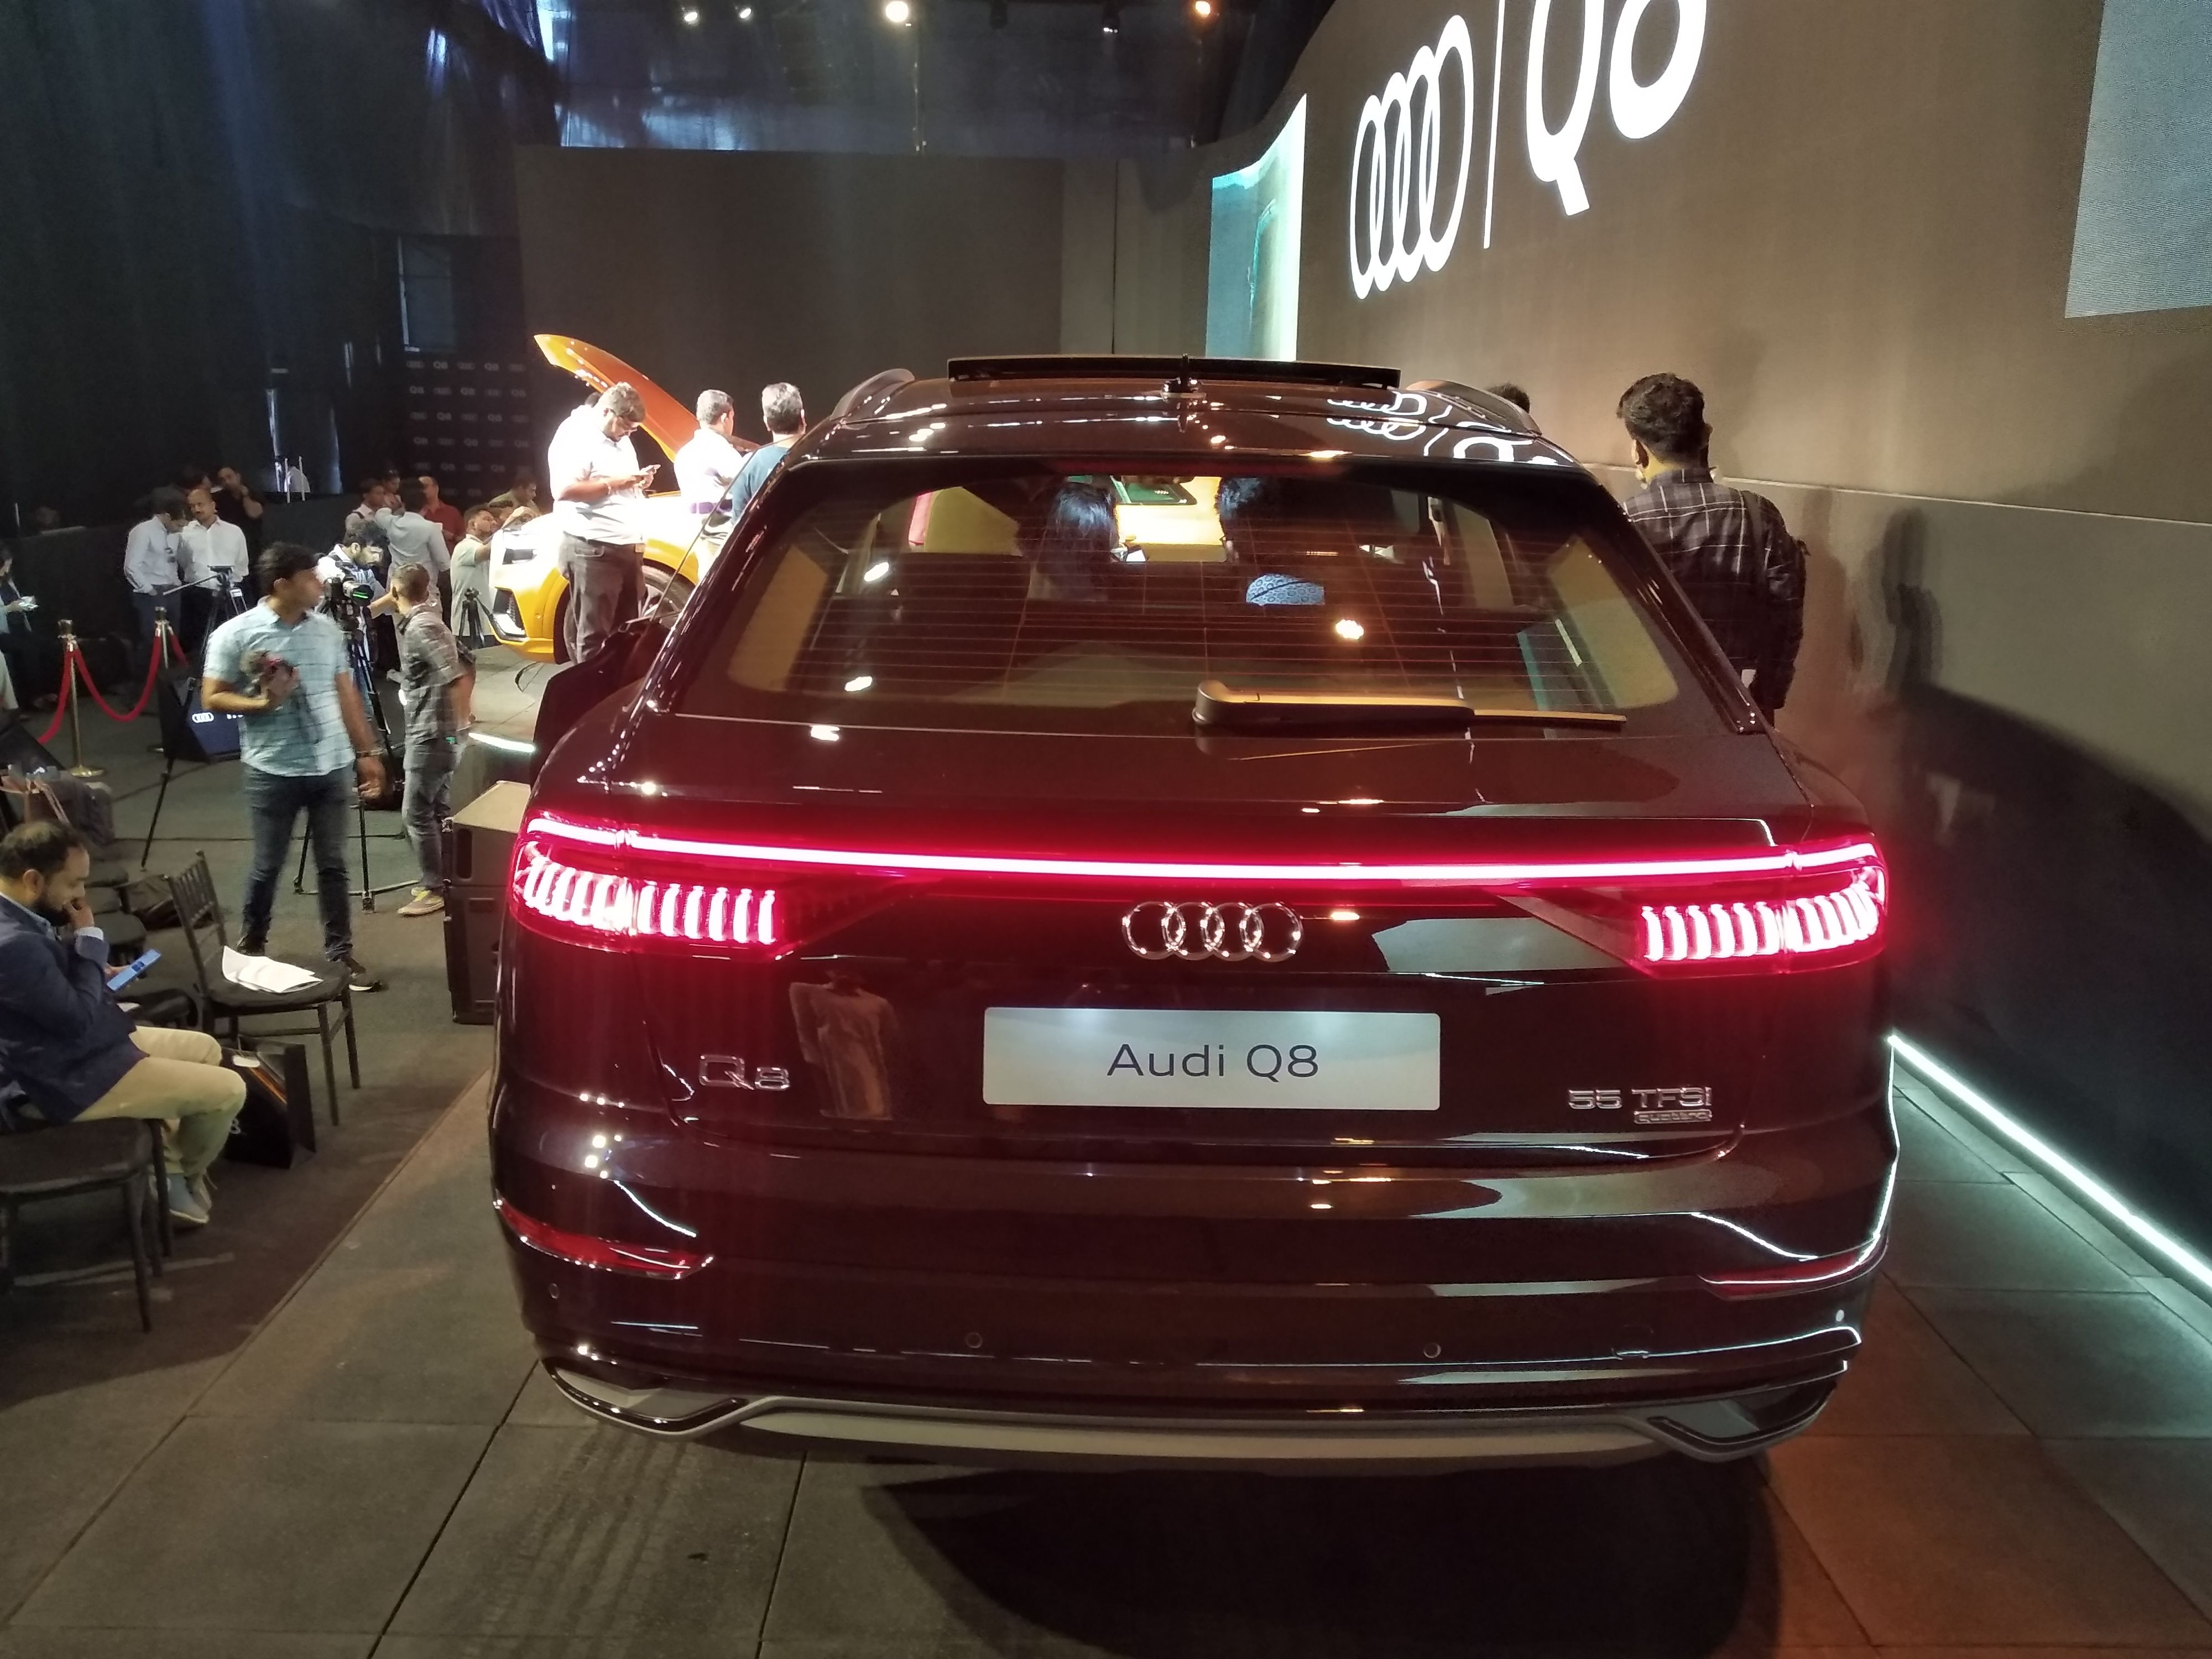 Powered by a 3.0-litre TFSI petrol engine, the Q8 puts out 340 hp of power and has peak torque figures of 500 Nm.